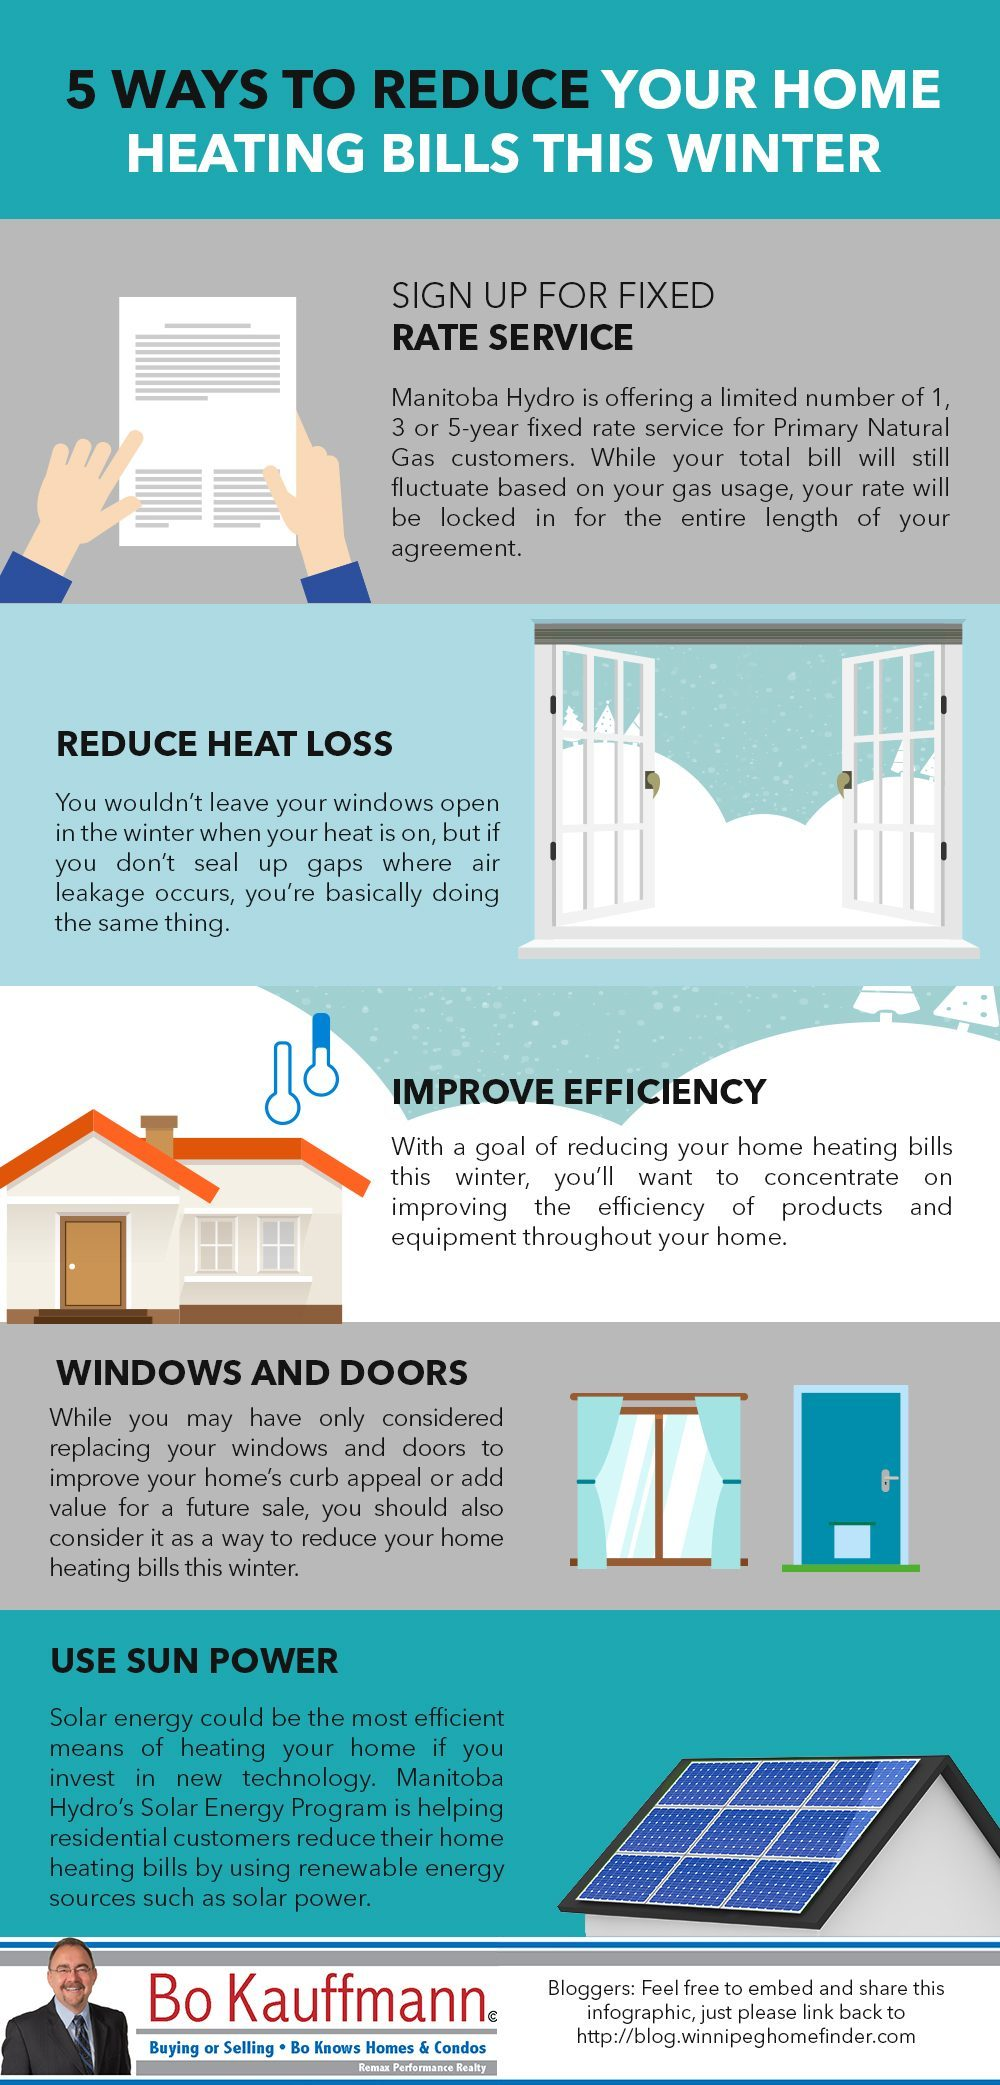 5 Ways To Reduce Your Home Heating Bills This Winter Home Improvements Latest Posts  Autumn Bathroom Curb Appeal Electrical Heating System Home Improvements investment Kitchen Landscaping Roofing Summer Windows Winnipeg Winter